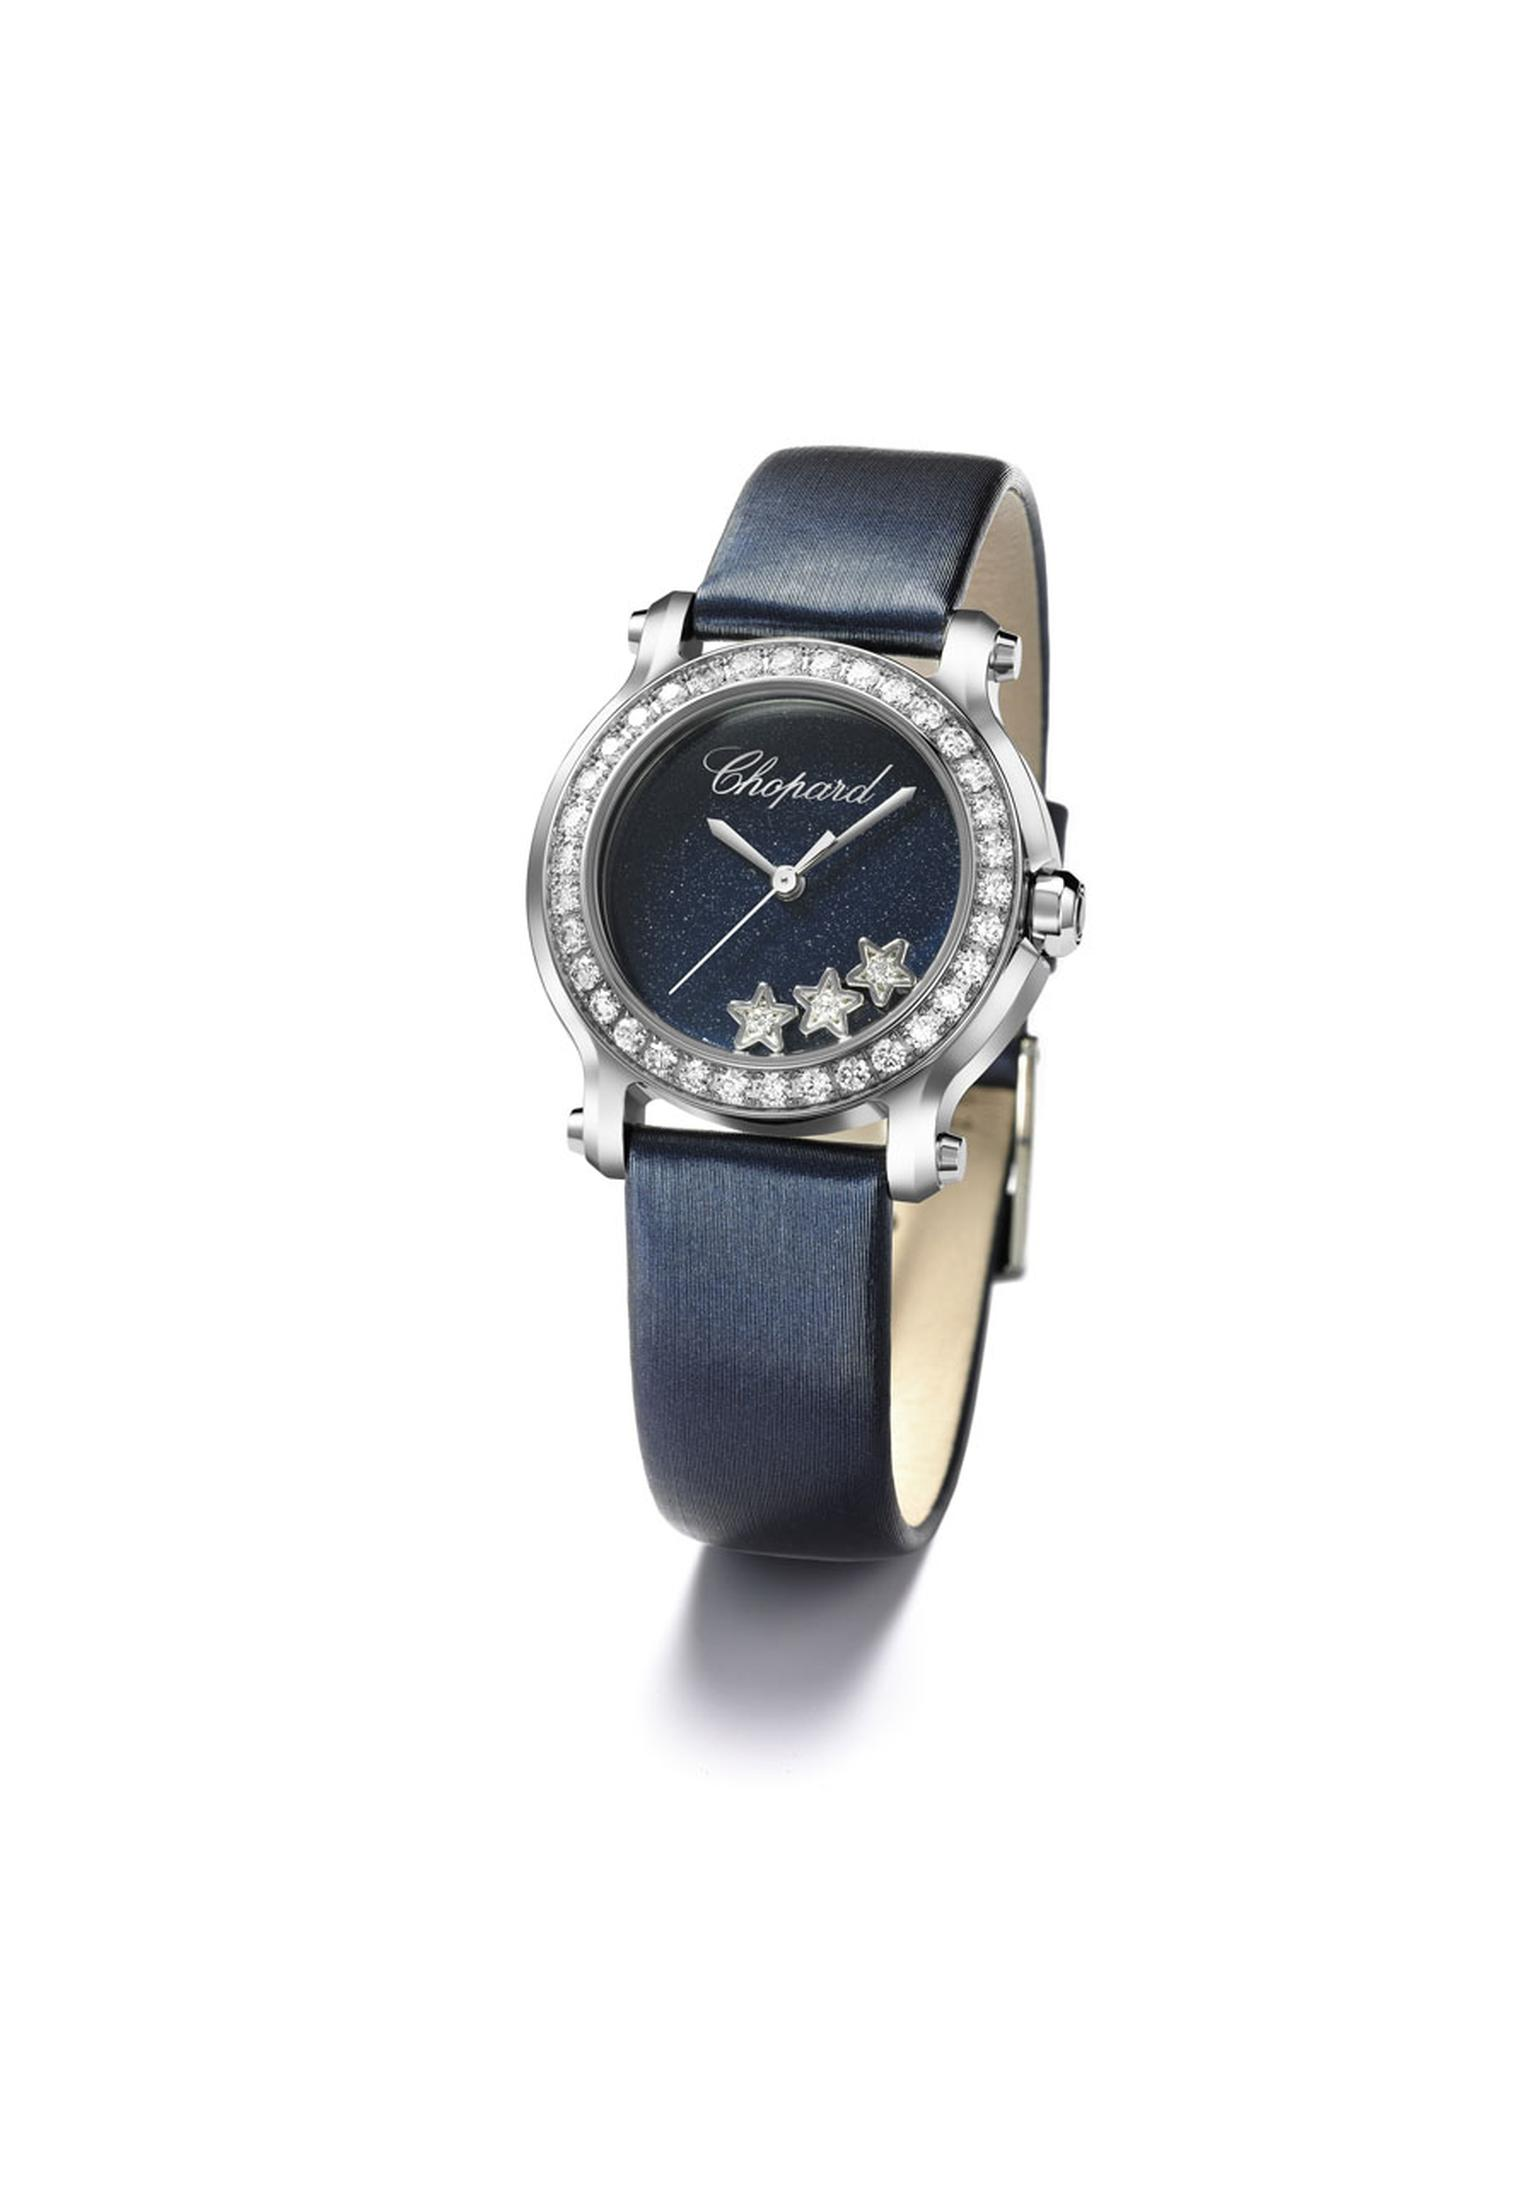 ChopardHappySport7.jpg